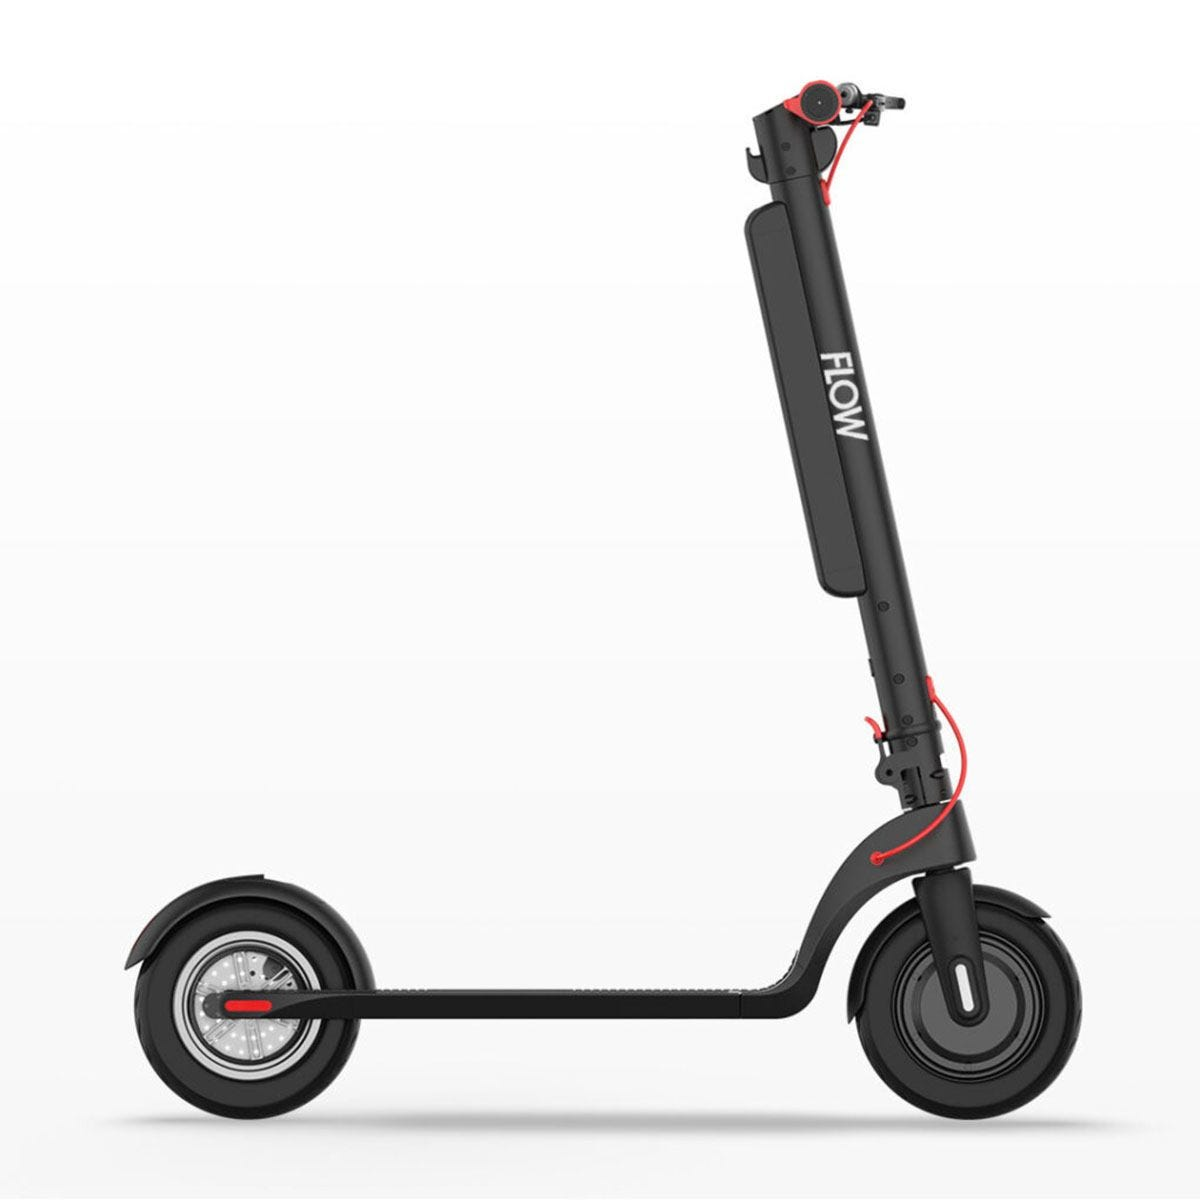 FLOW ST Kilda XTS Pro Electric Scooter - Black